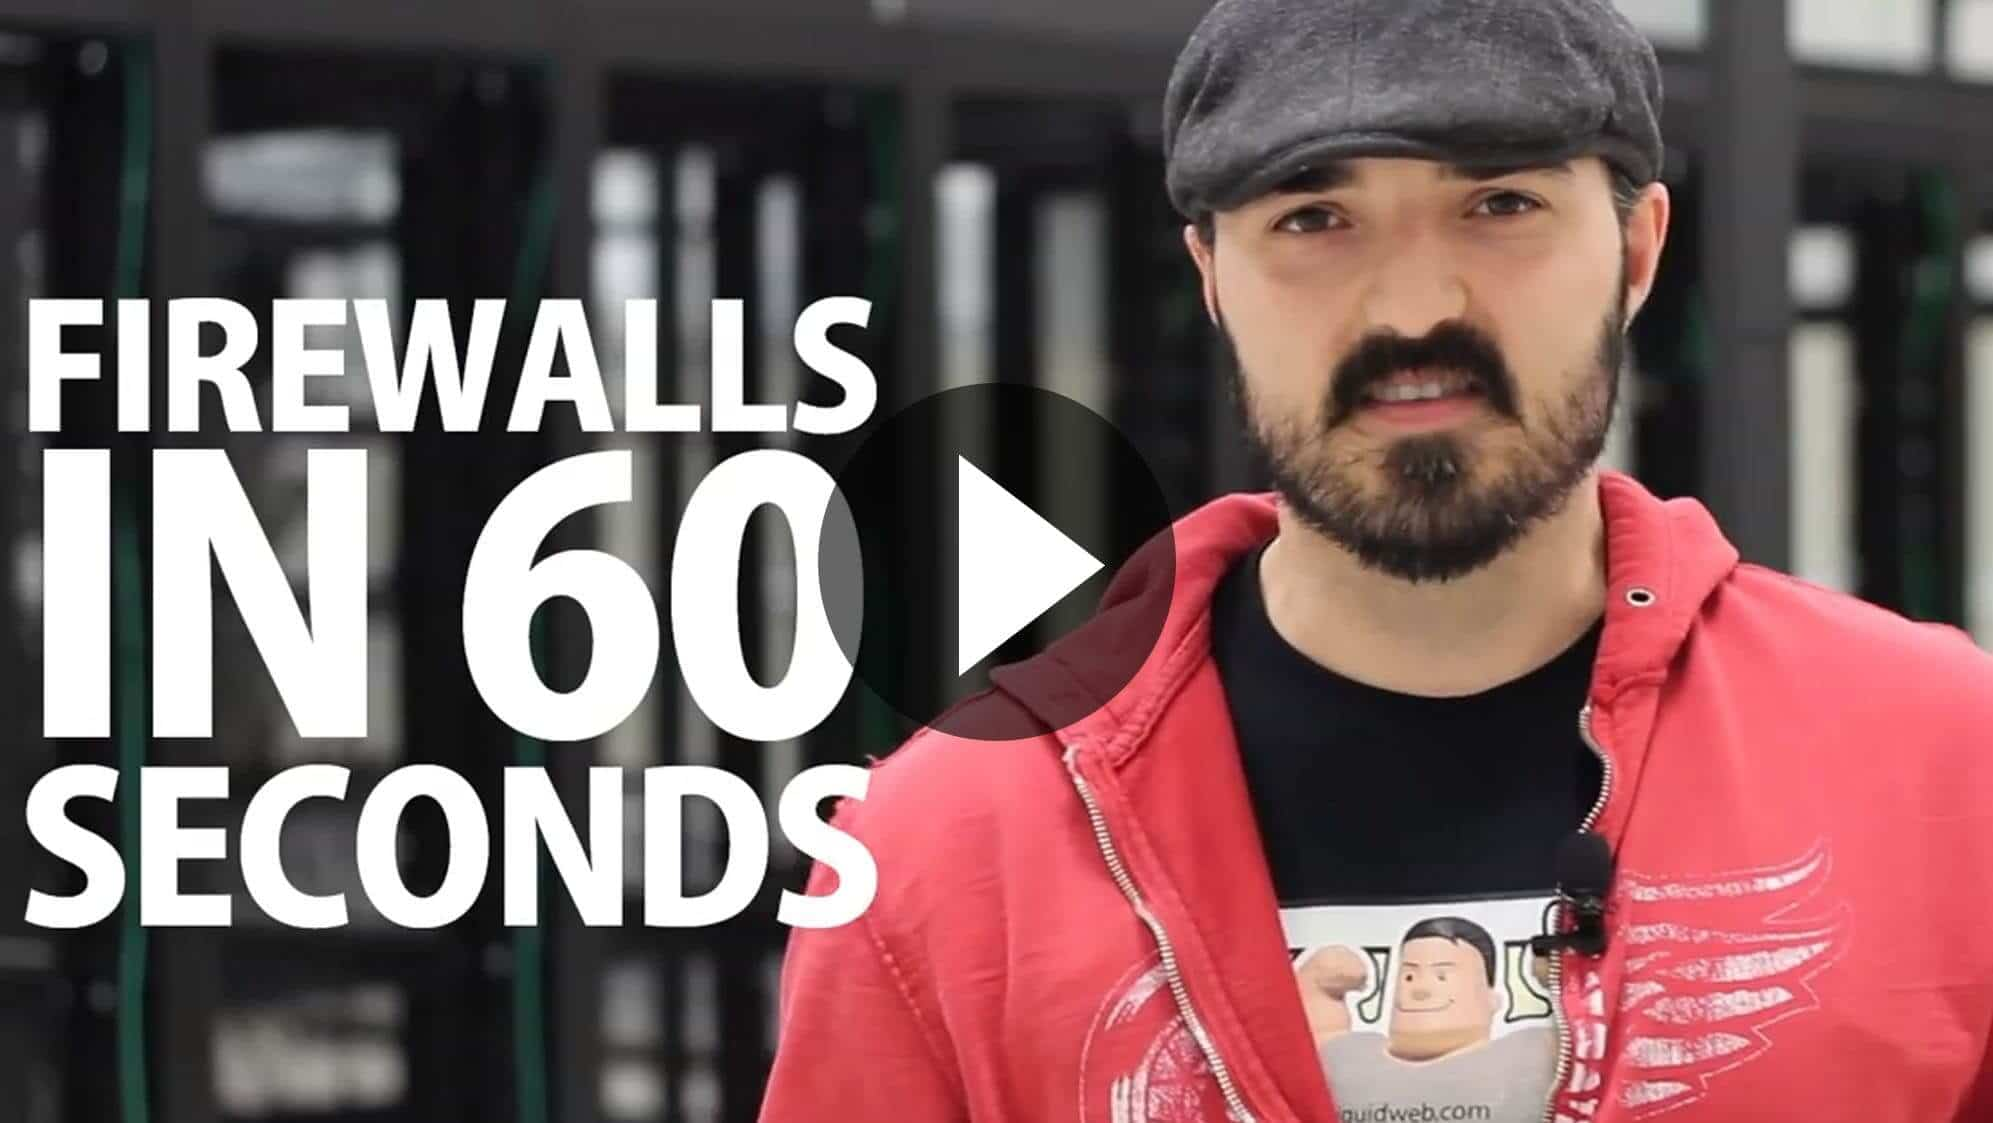 Firewalls in 60 Seconds